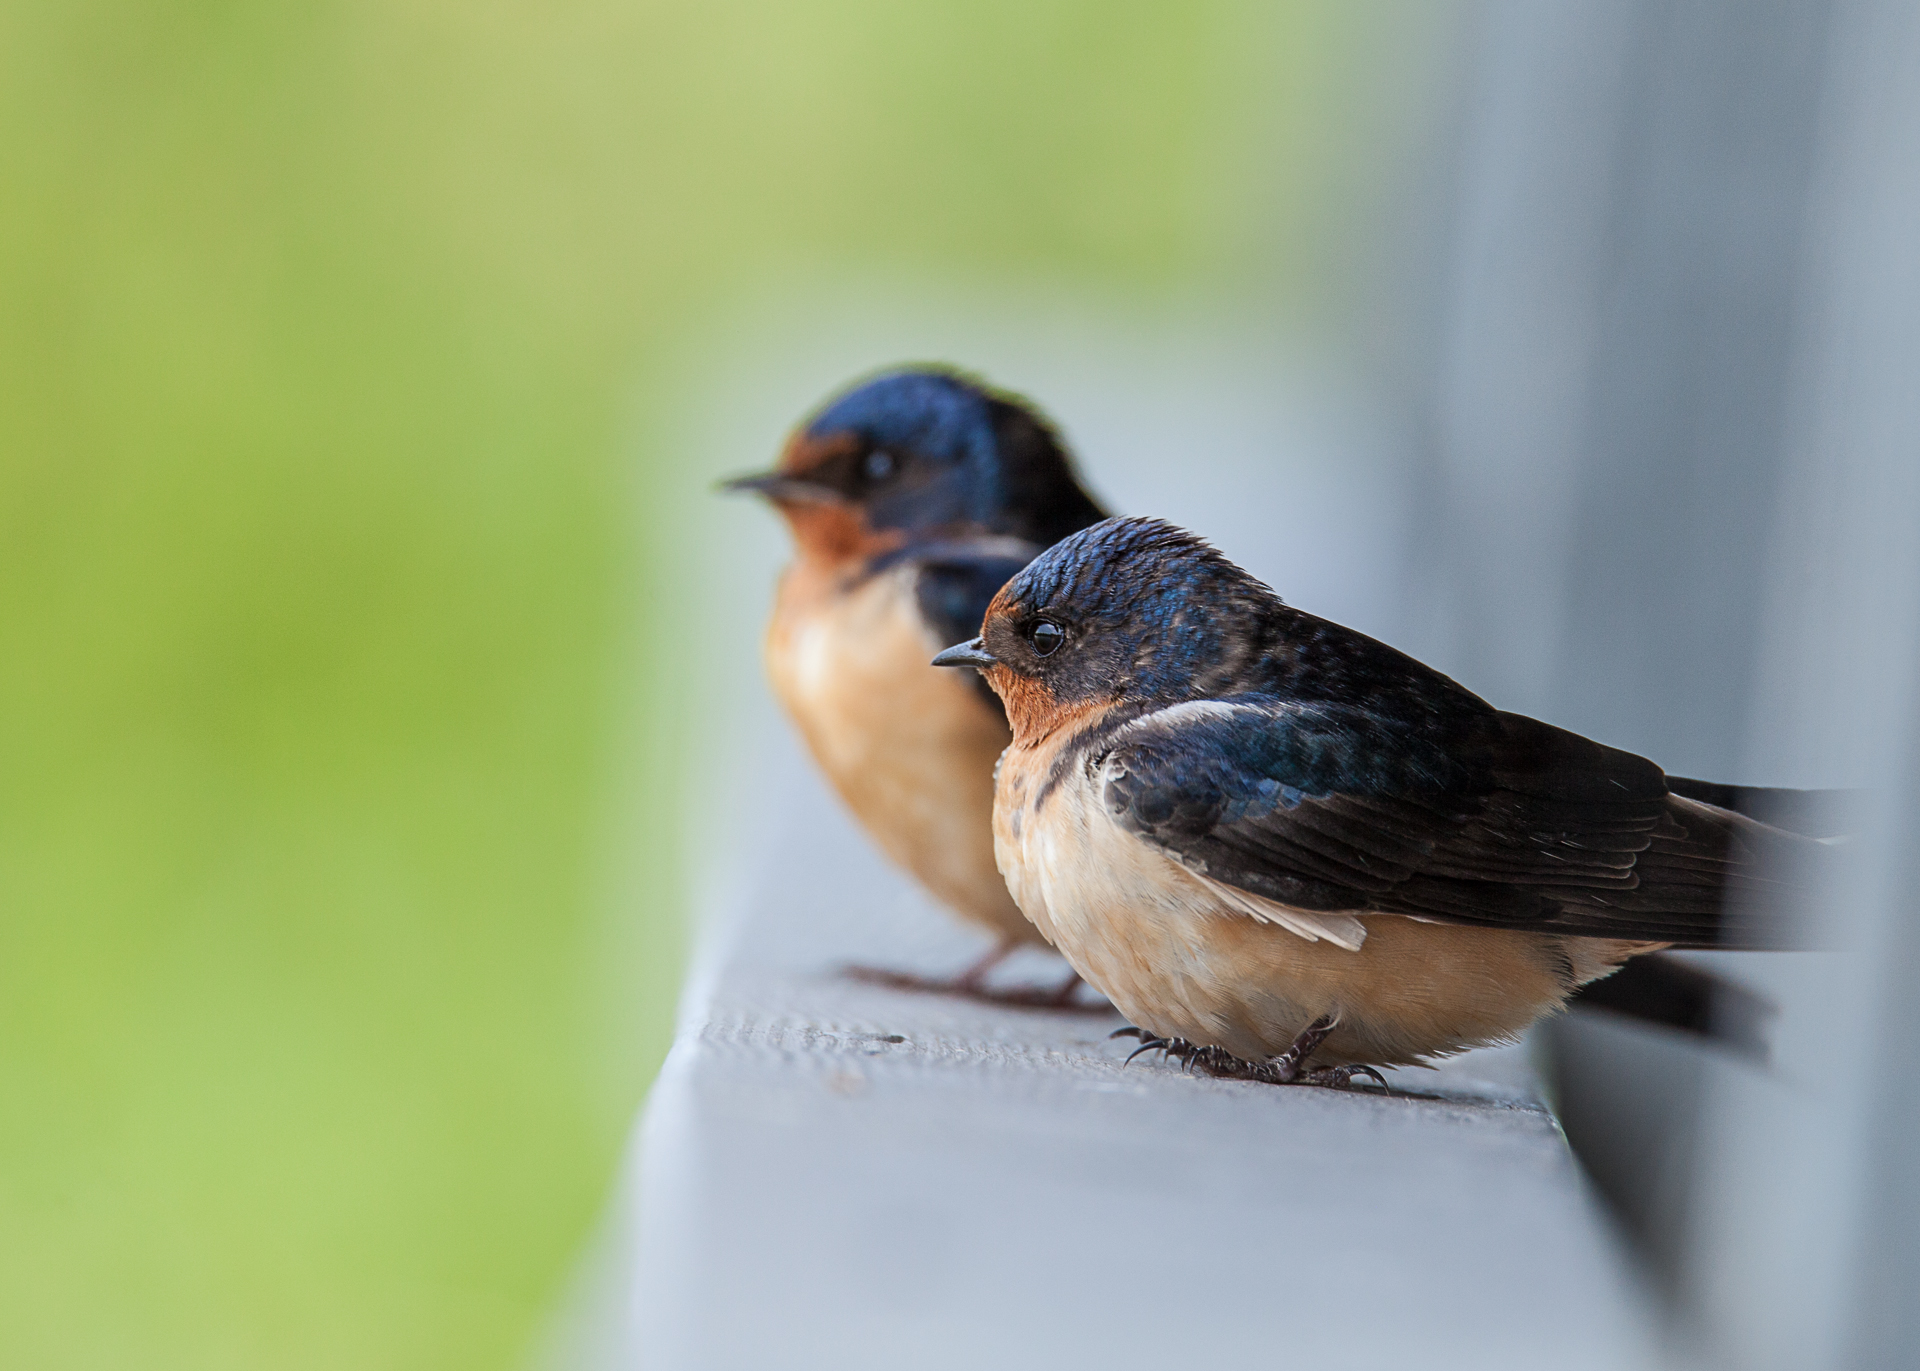 The pair of barn swallows were waiting for us to leave, so they could return to their nest.